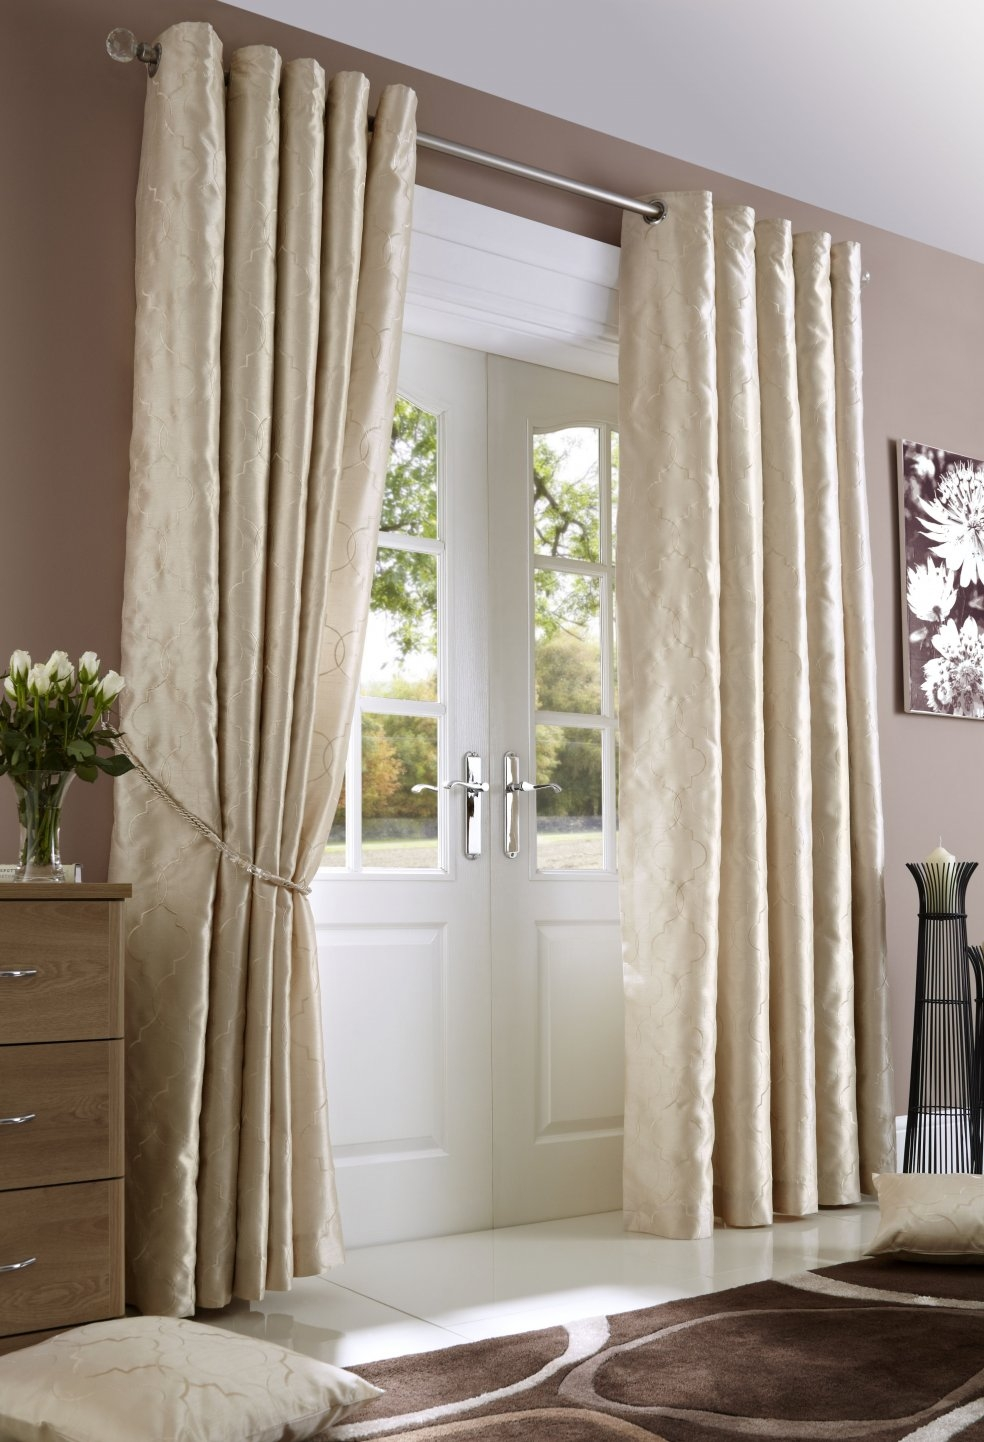 Nouveau Cream Lined Eyelet Curtains Woodyatt Curtains Stock In Lined Cream Curtains (Image 11 of 15)